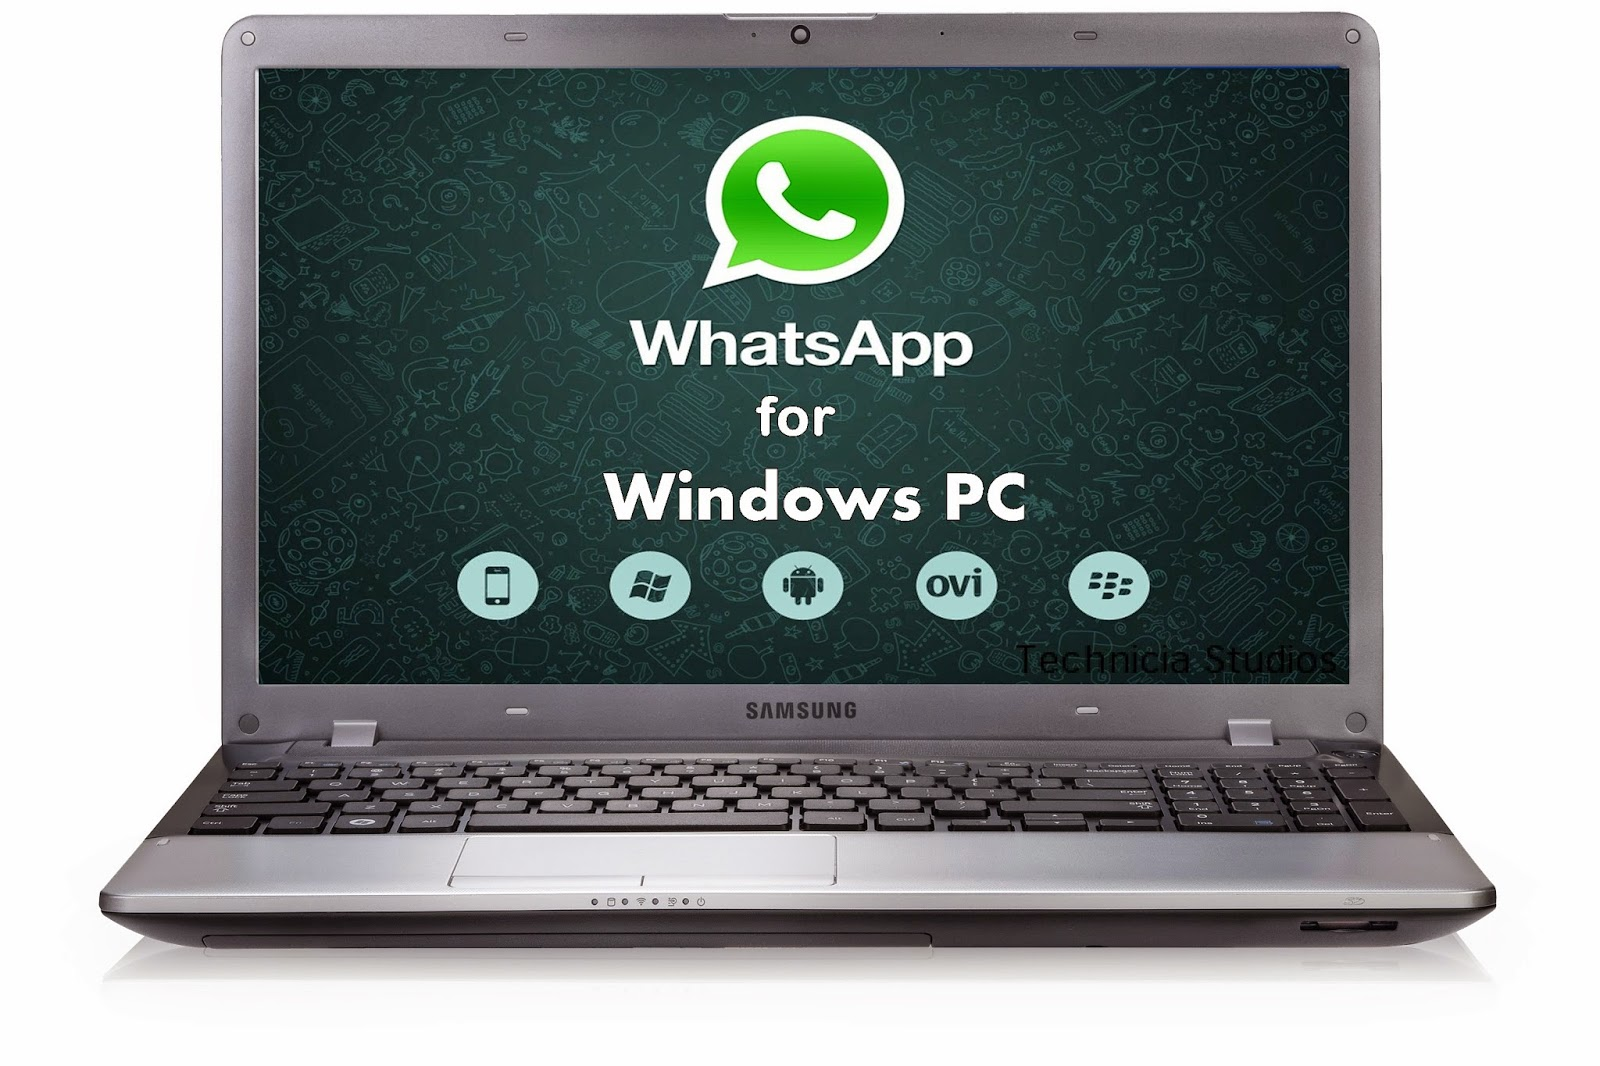 whatsapp free download for pc windows 7